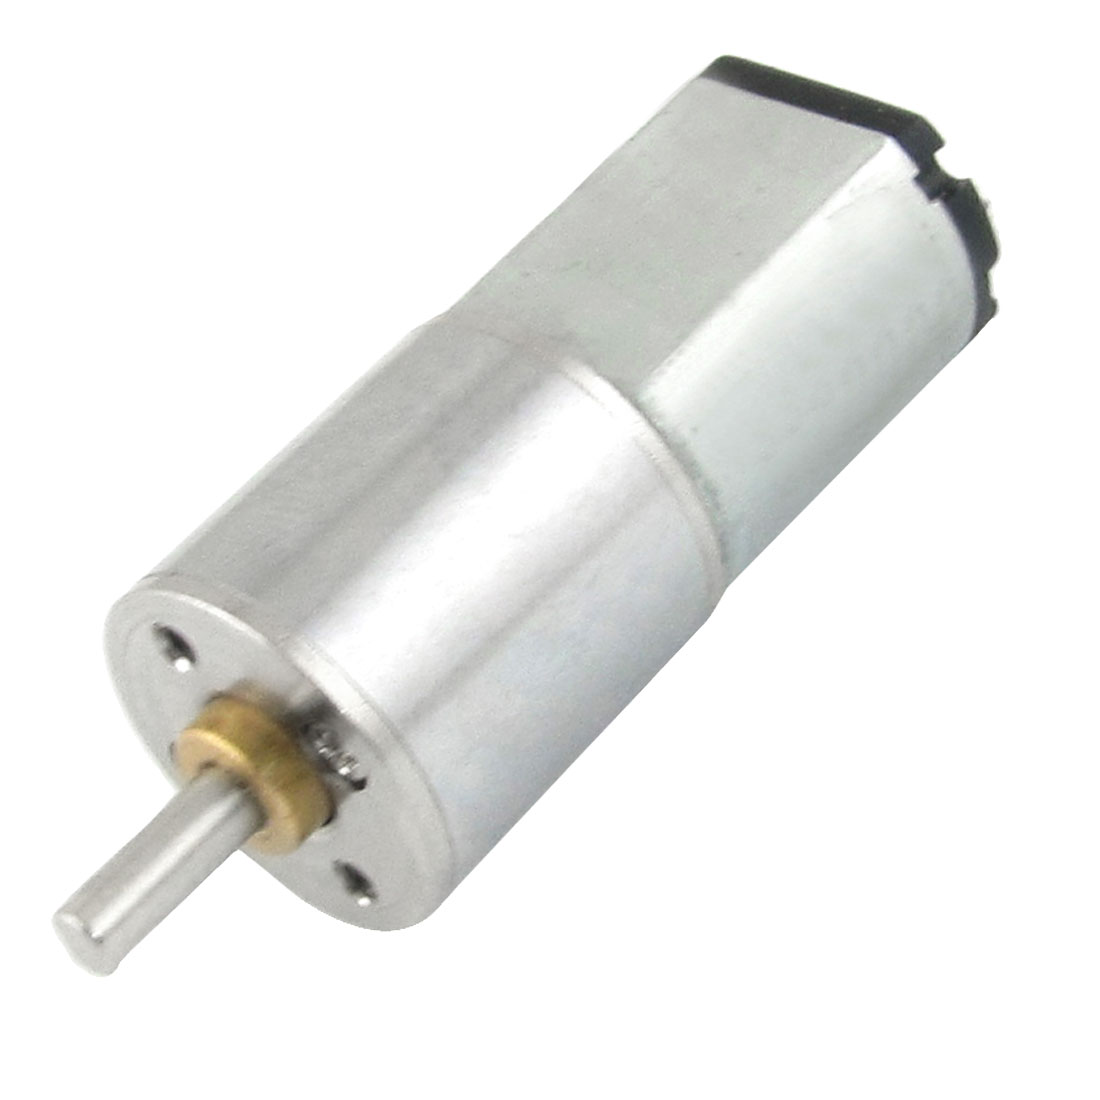 40RPM 6V 0.6A High Torque Electric DC Geared Motor Replacement